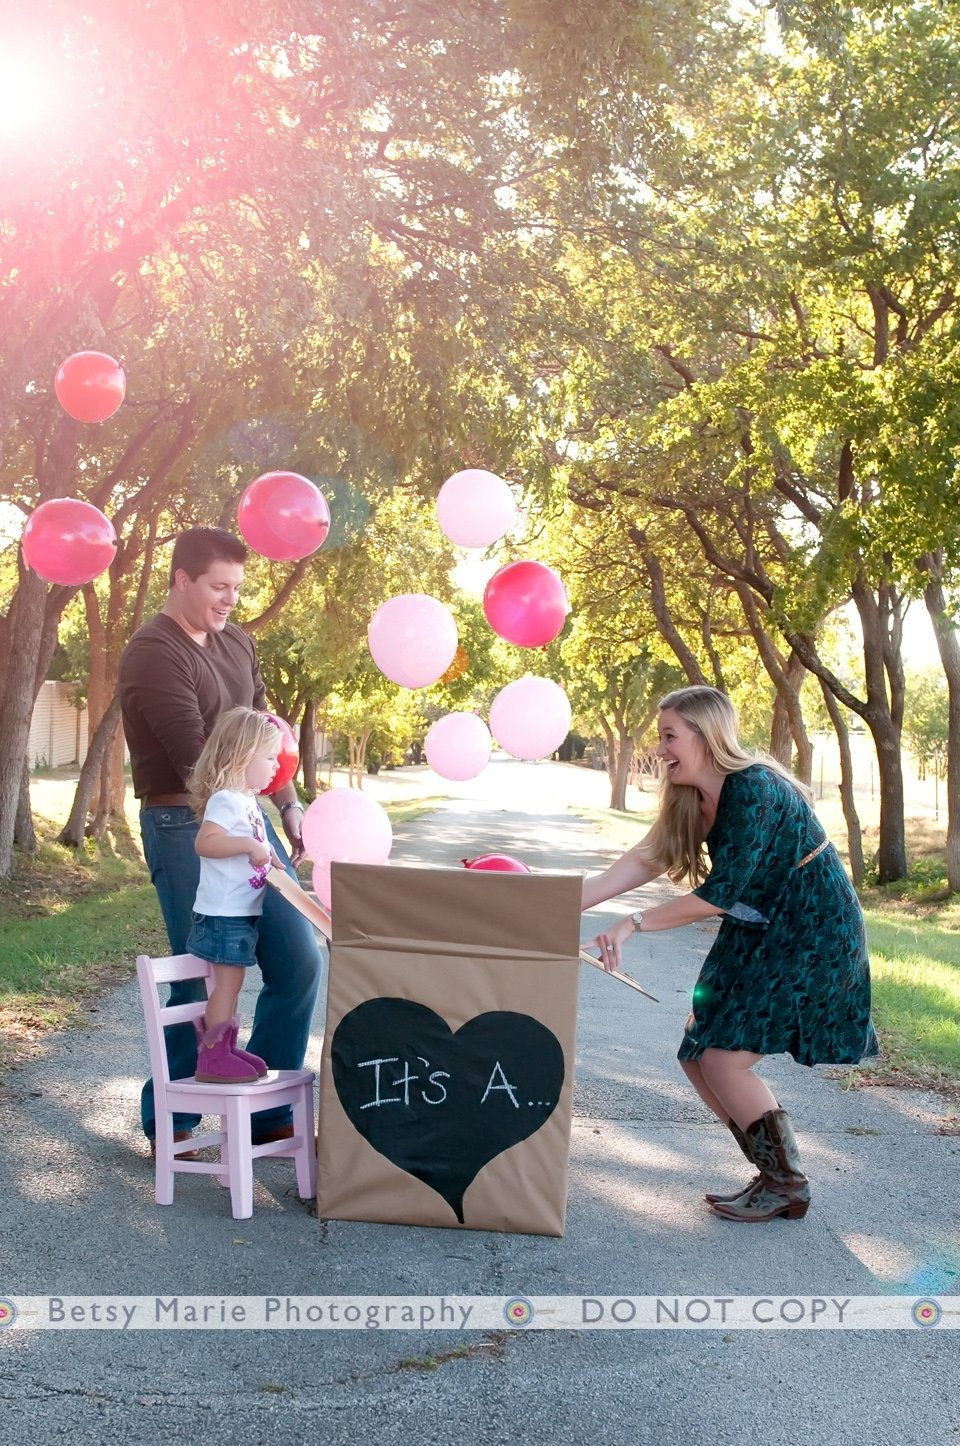 10 Cute Cute Ideas For Revealing Baby Gender pinbetsy marie photography on photography pinterest 2020